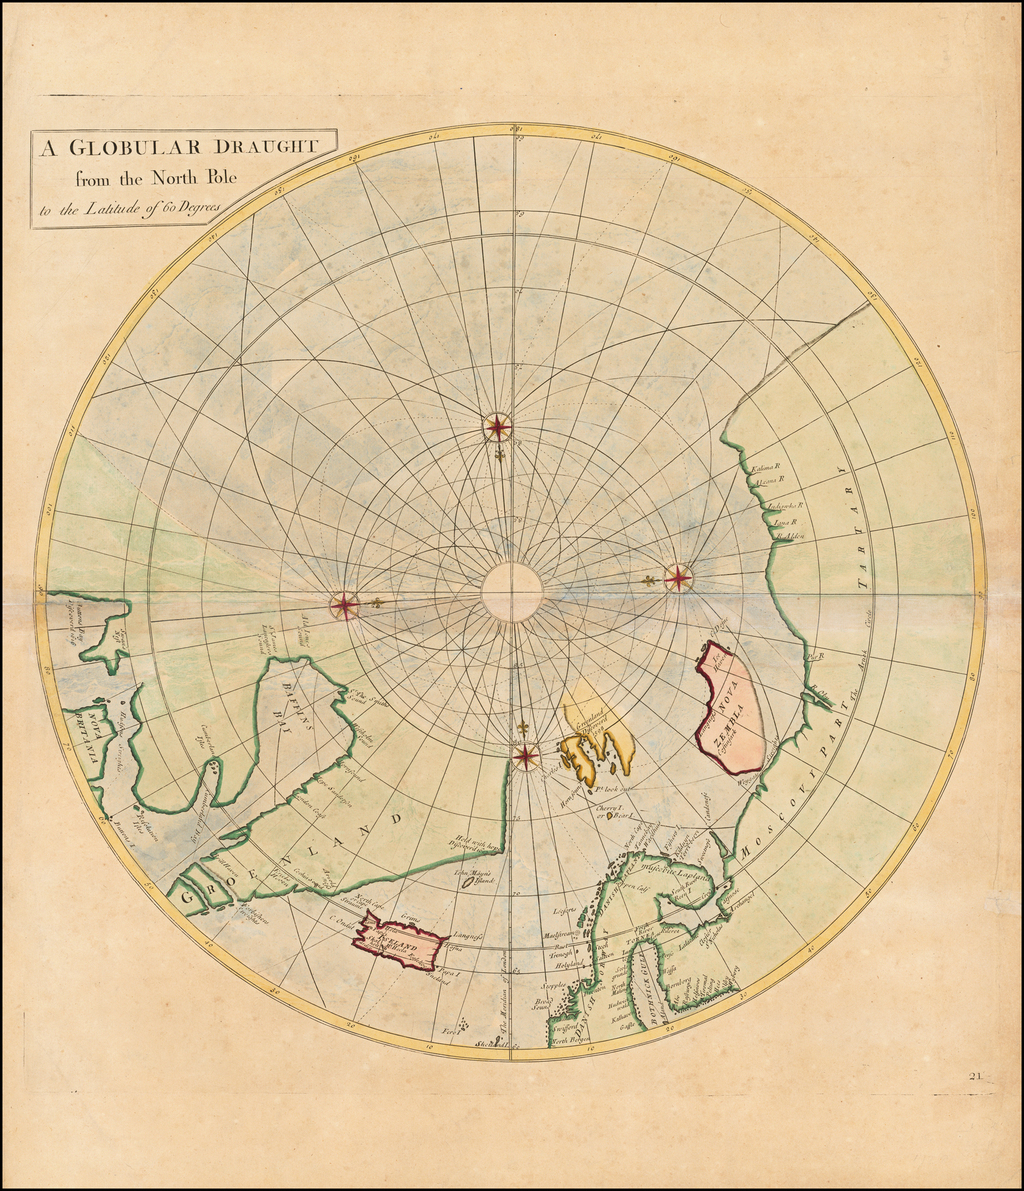 [North Pole] A Globular Draught from the North Pole to the Latitude of 60 degrees. By John Senex / Edmund Halley / Nathaniel Cutler